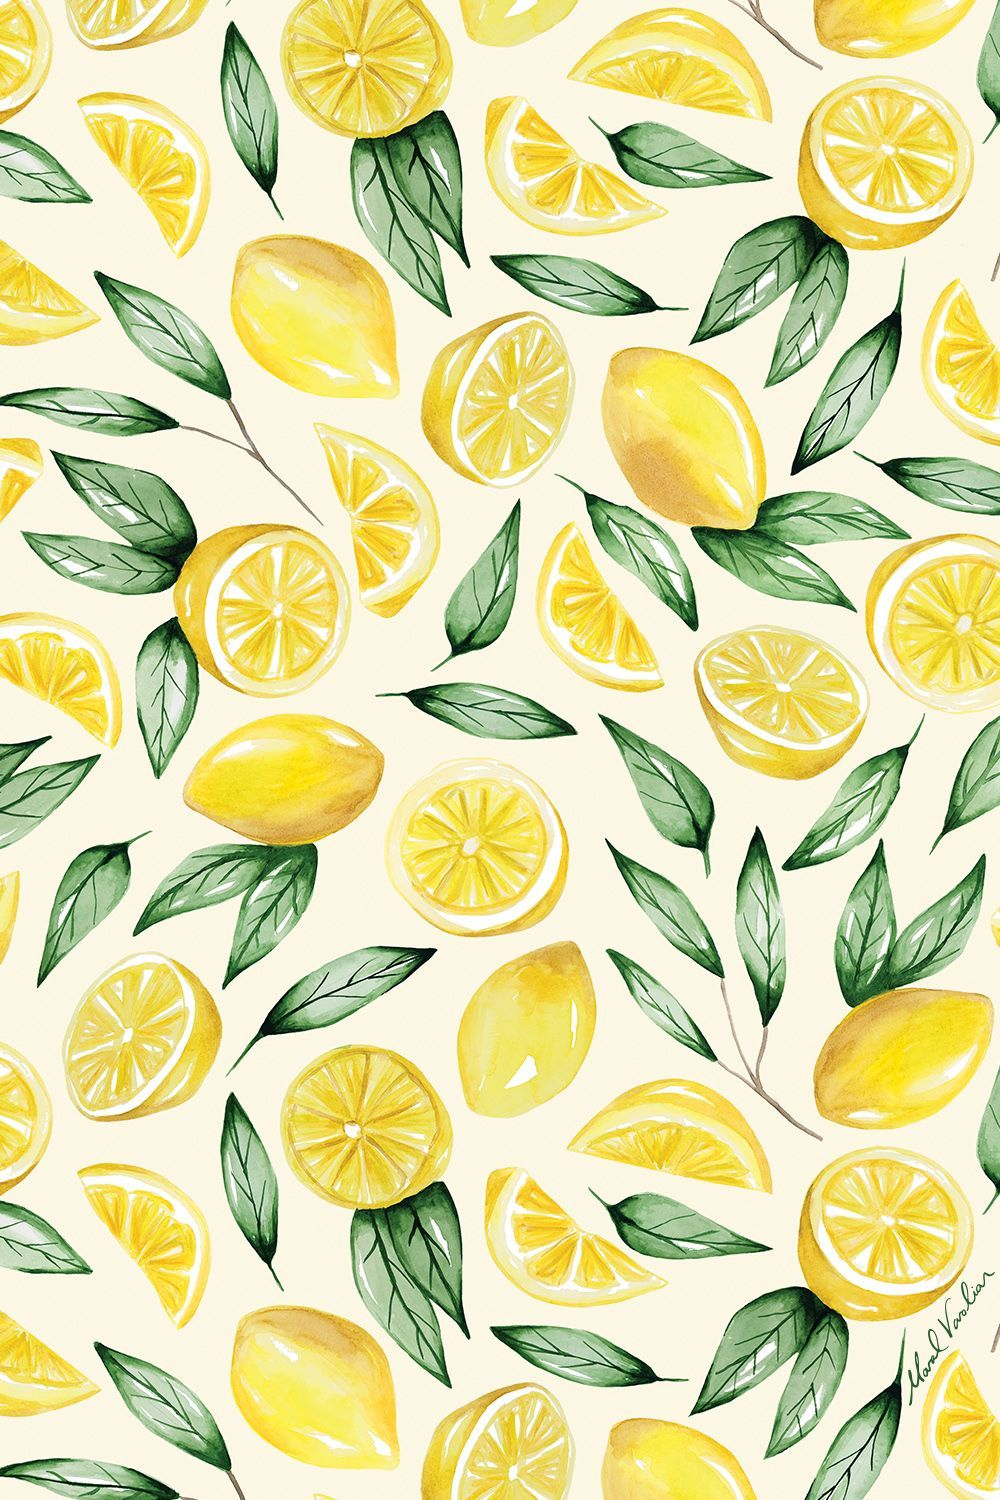 Summer Wallpaper For iPhone | 30+ Sun-Filled Backgrounds For Summer